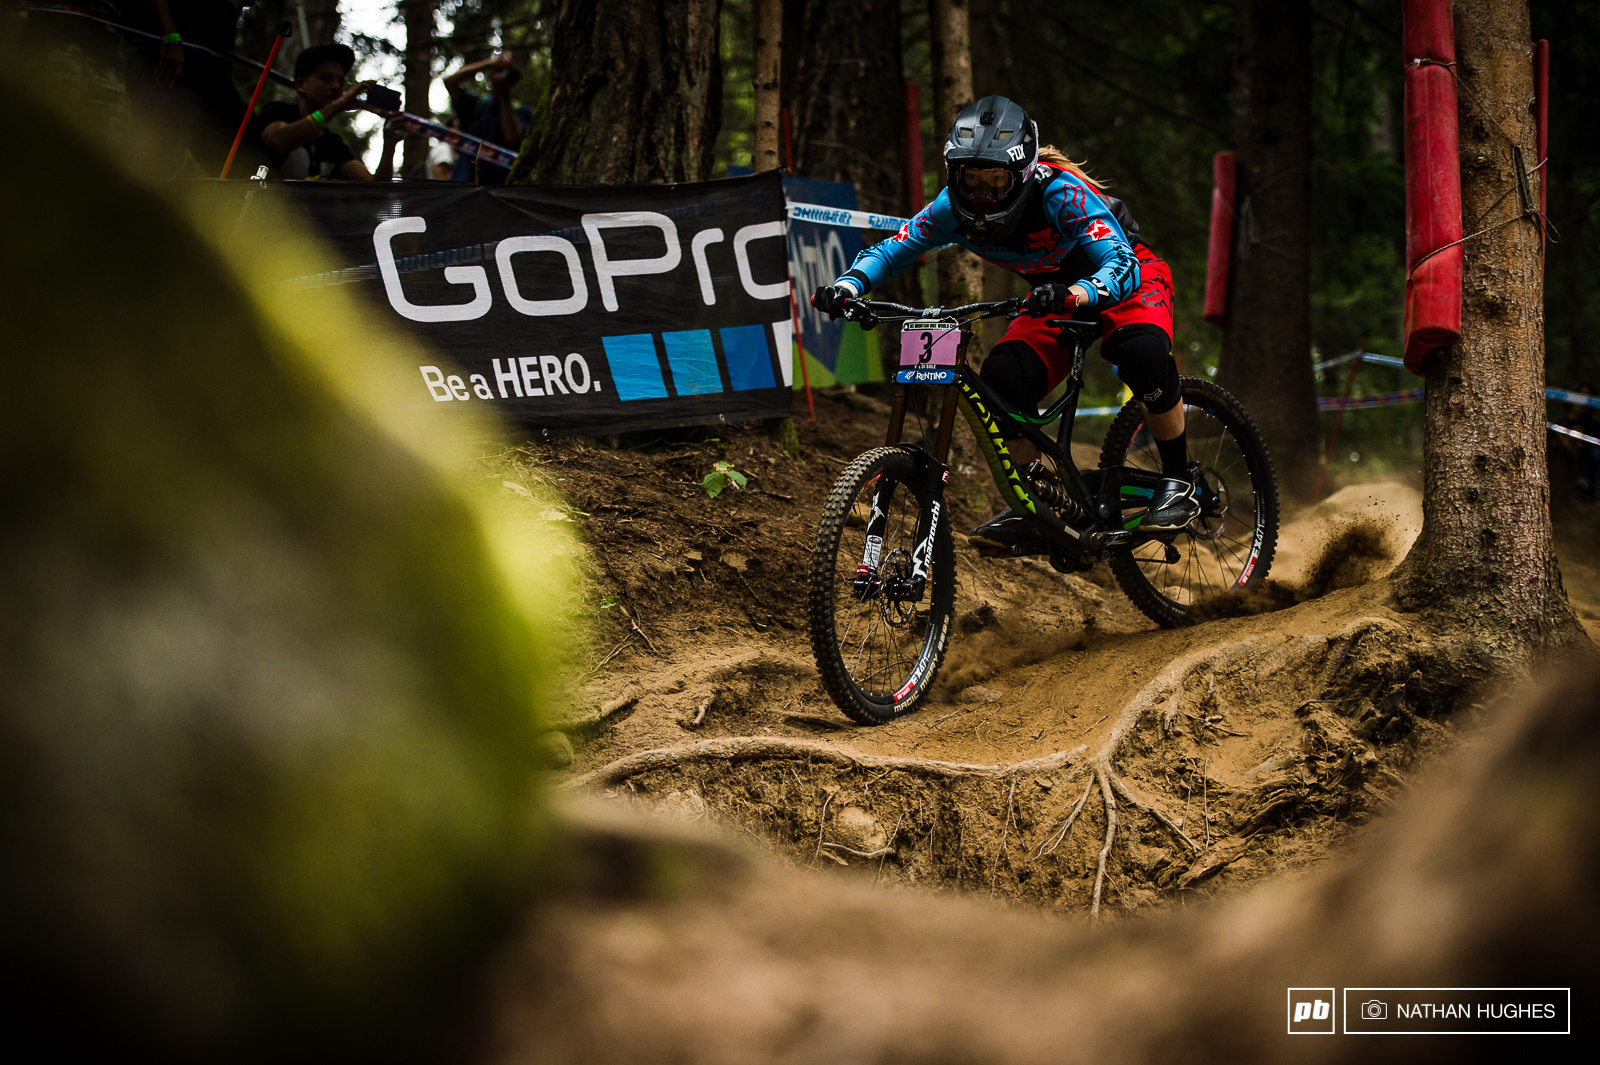 Tahnee Seagrave looked mighty wild in search of extra seconds on her race run today... Thankfully she held on for another podium to take third spot in the overall.